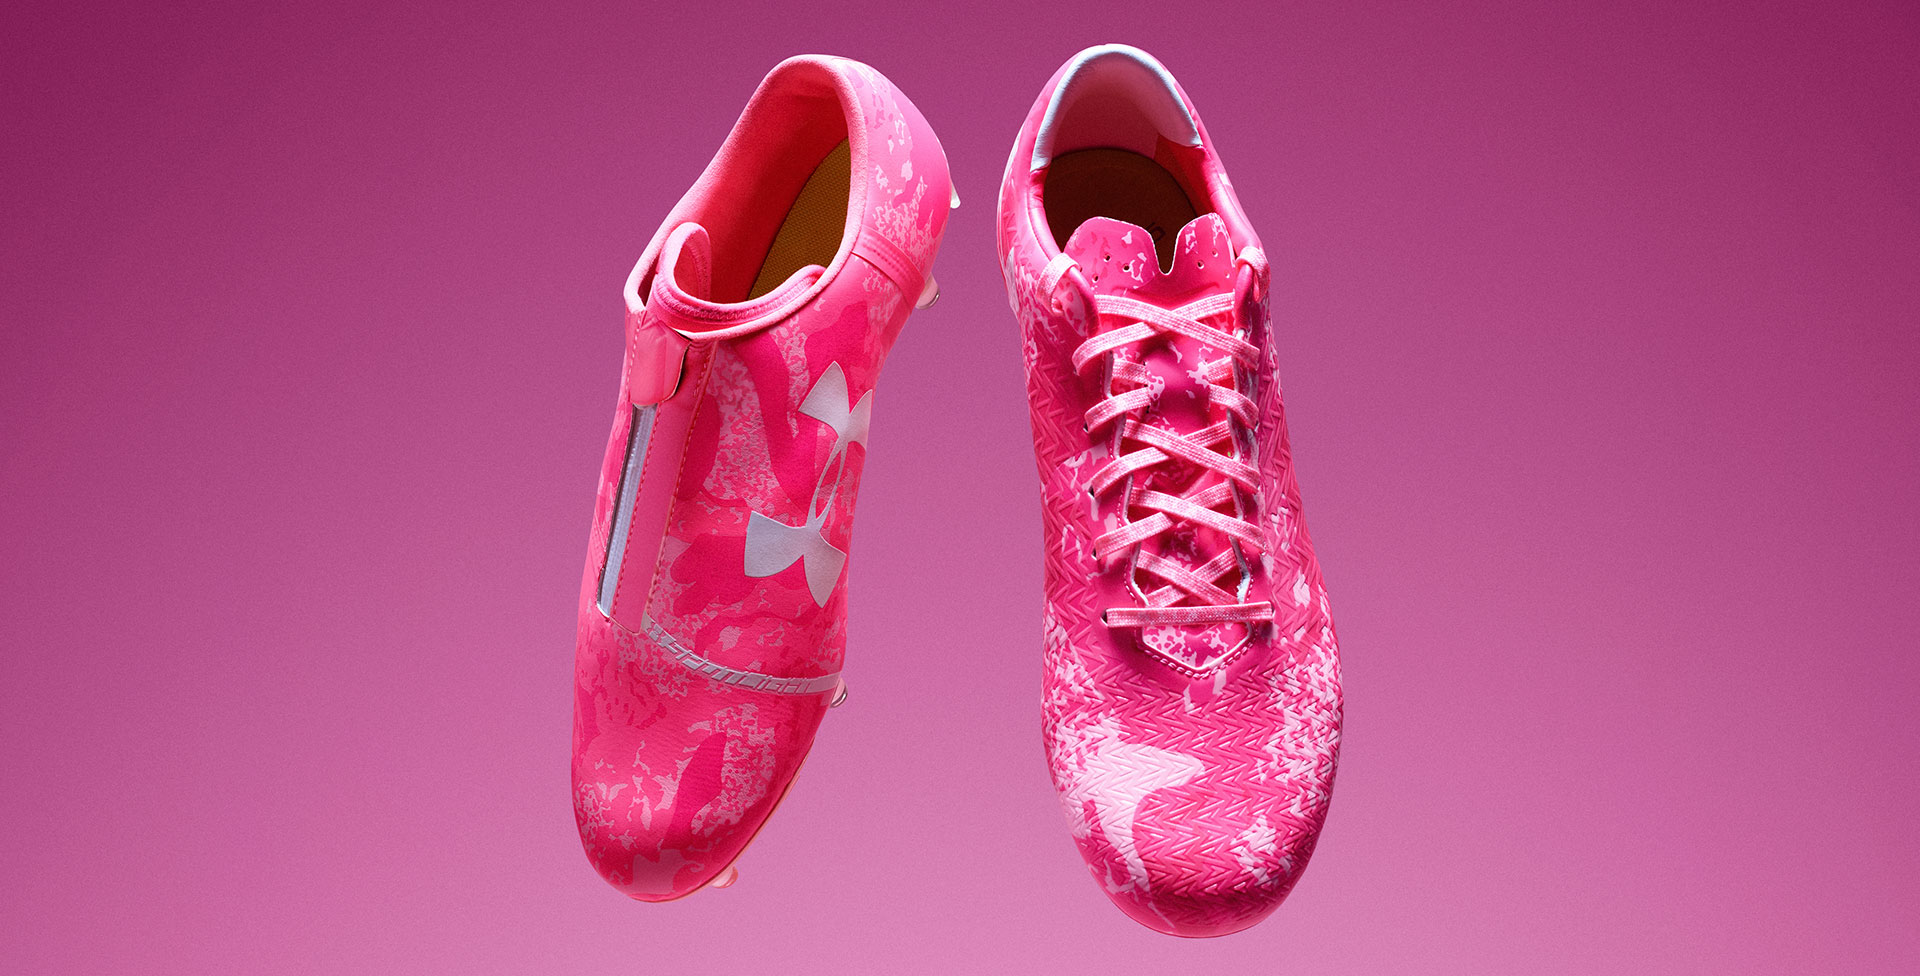 c298d0c3531b Under Armour releases  Power in Pink  boots